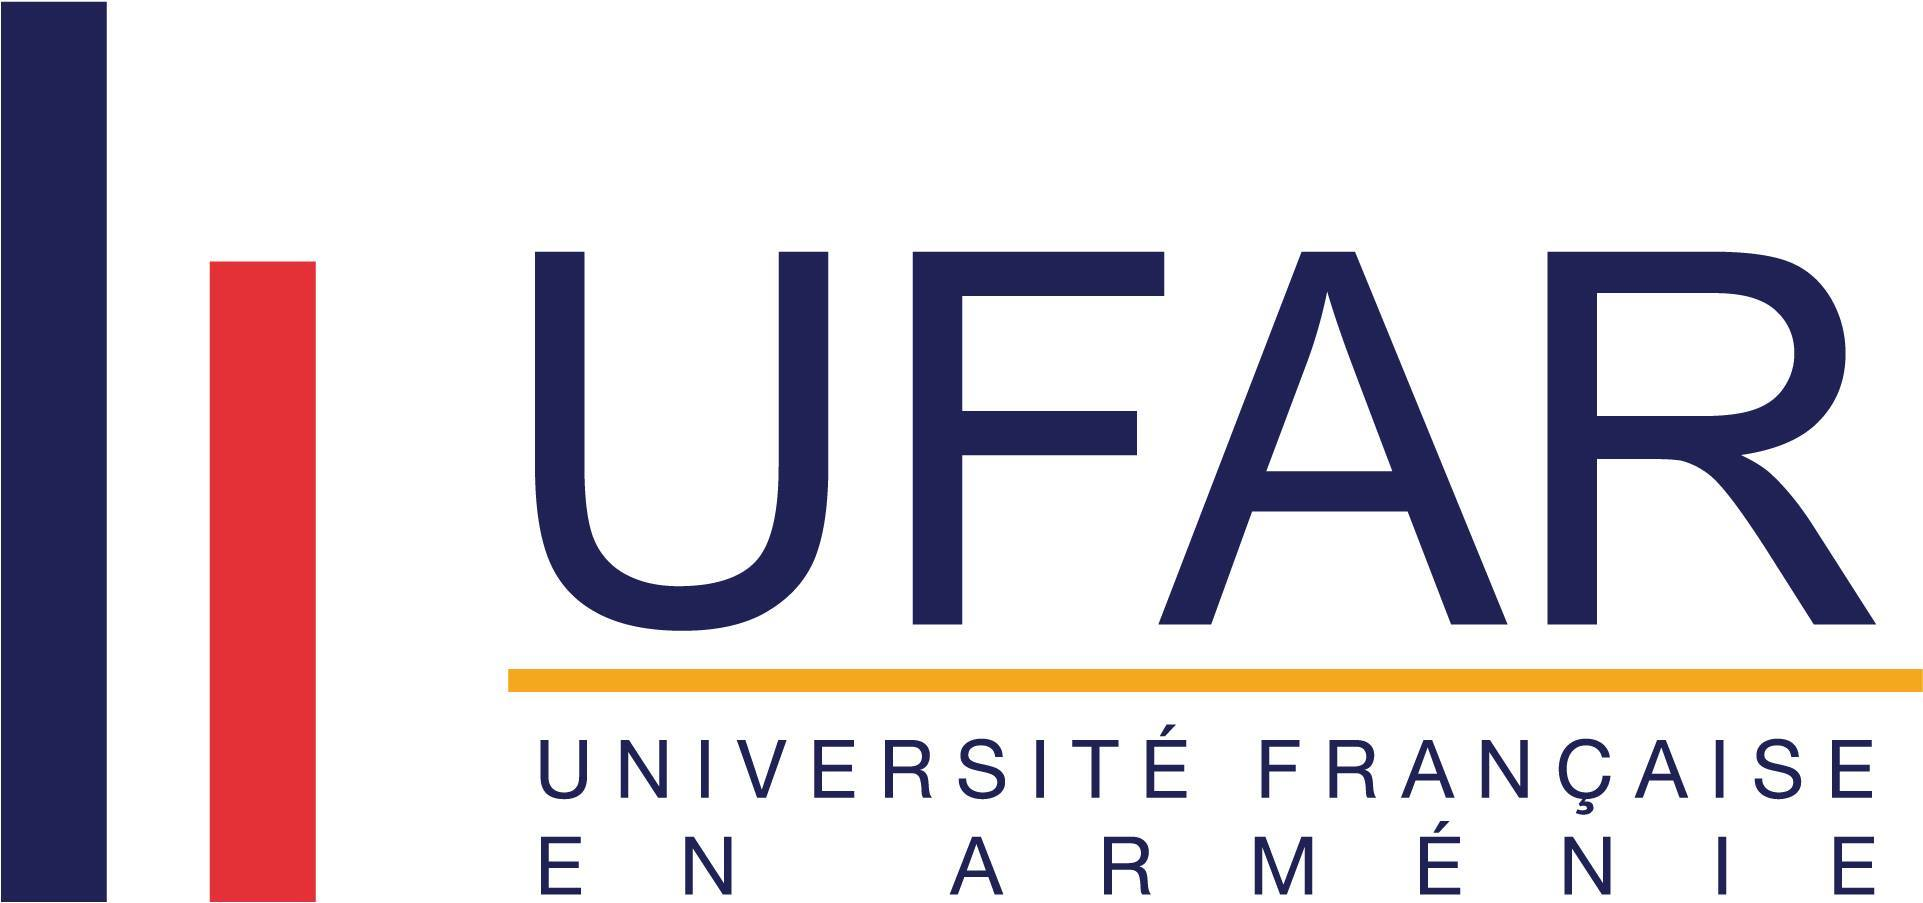 French University in Armenia - UFAR